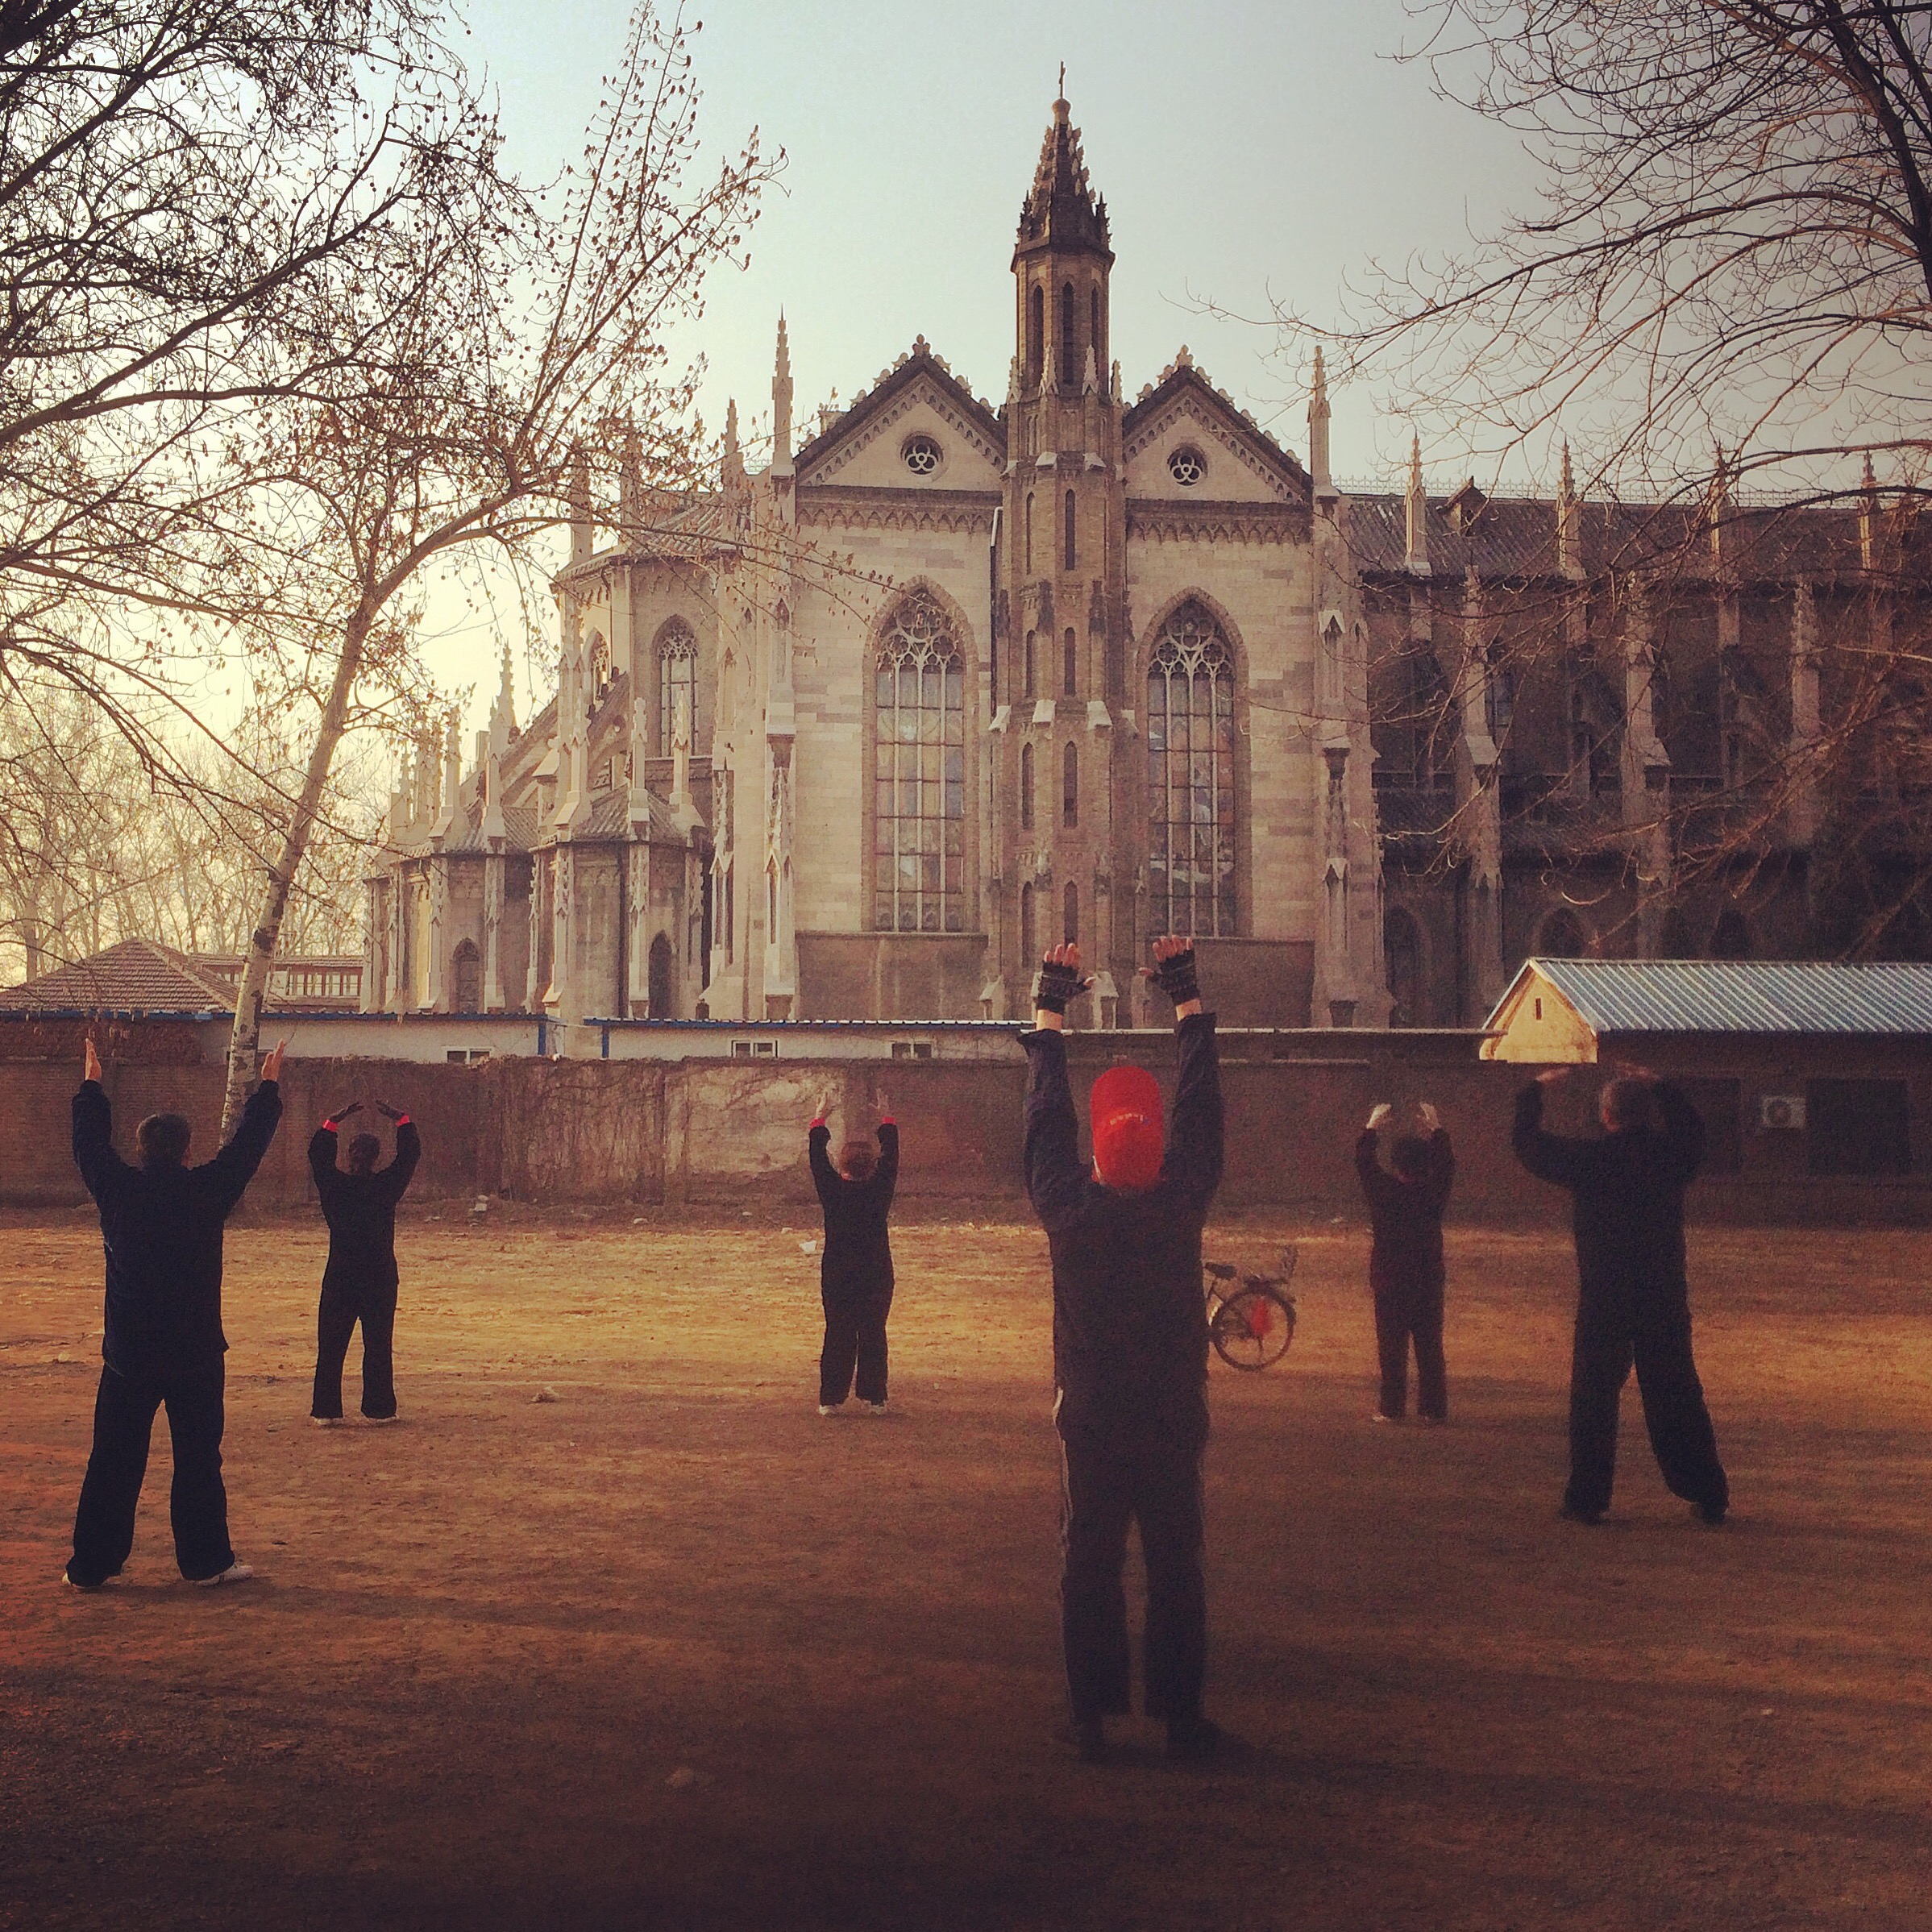 Elderly Chinese practice taiqi outside an old Catholic church, Jinan.